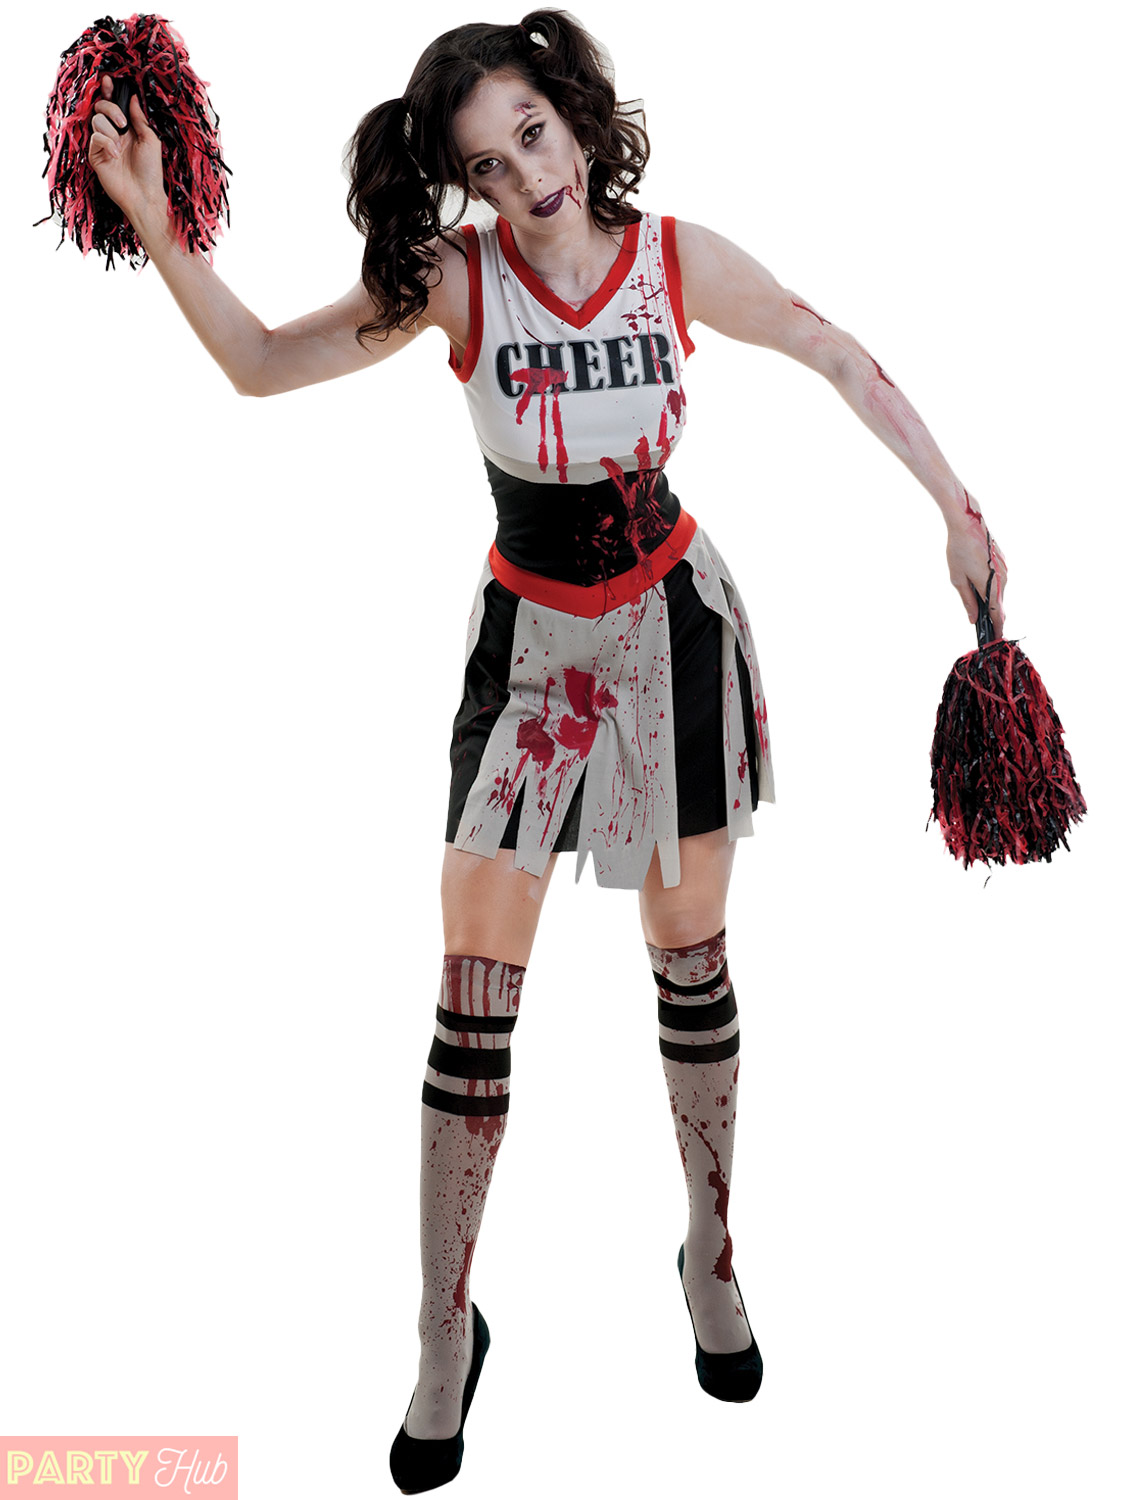 Details about Ladies Zombie Cheerleader Costume Adults Halloween Fancy  Dress Womens Outfit